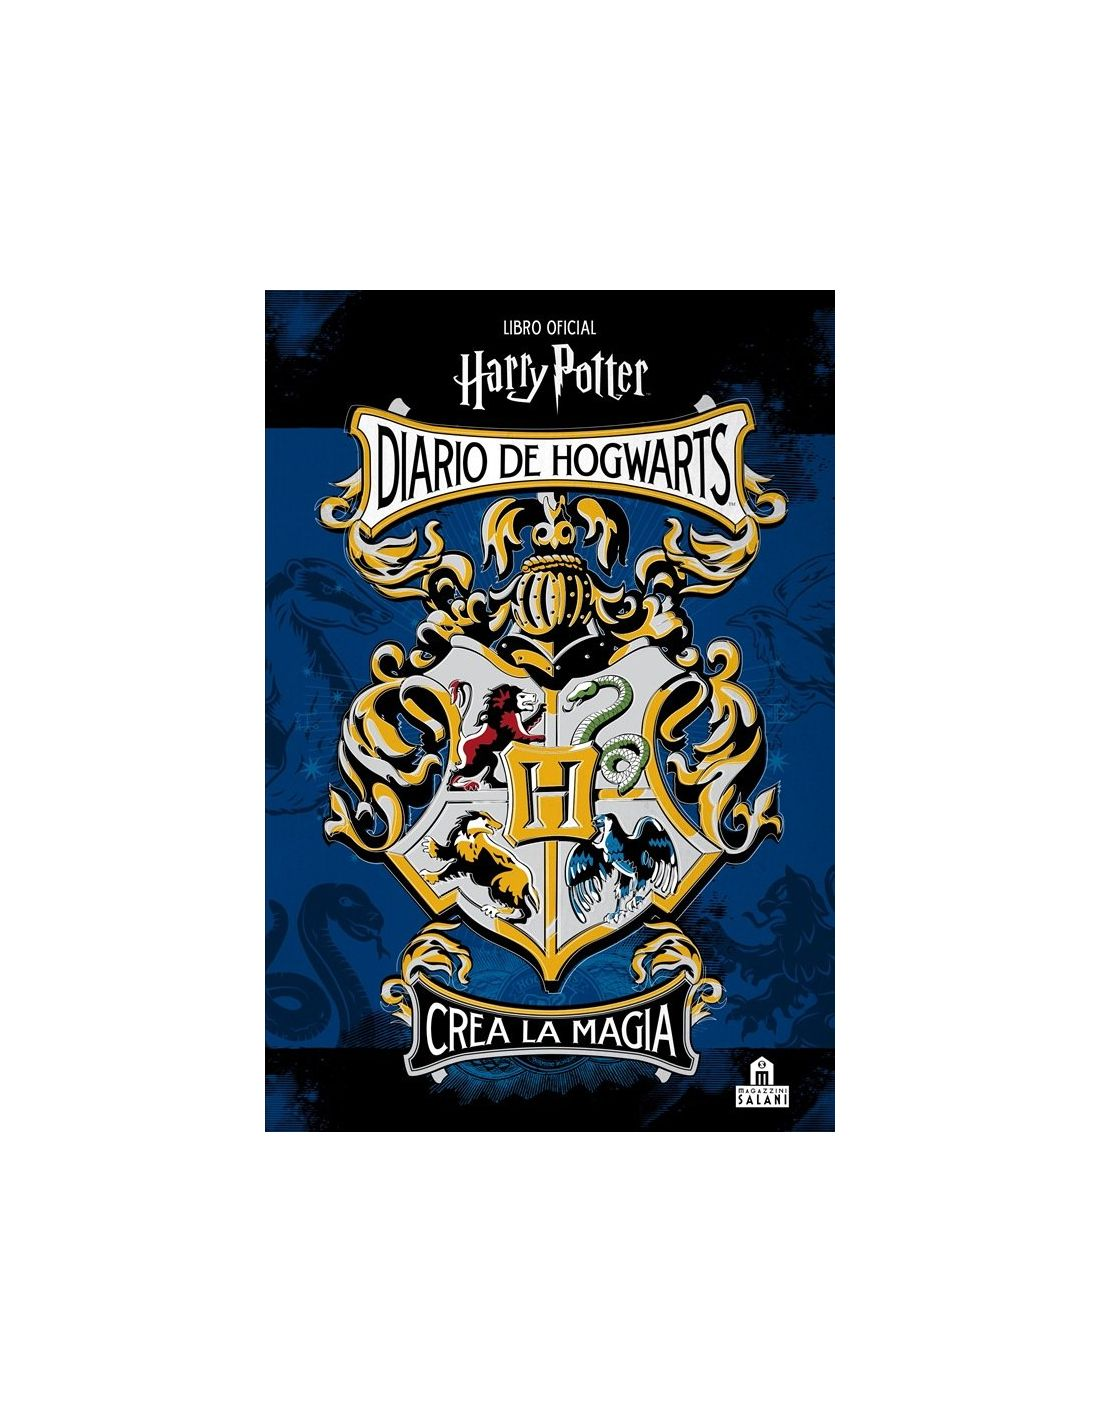 Comprar Libros De Harry Potter Libro Harry Potter Diario De Hogwarts Harry Potter